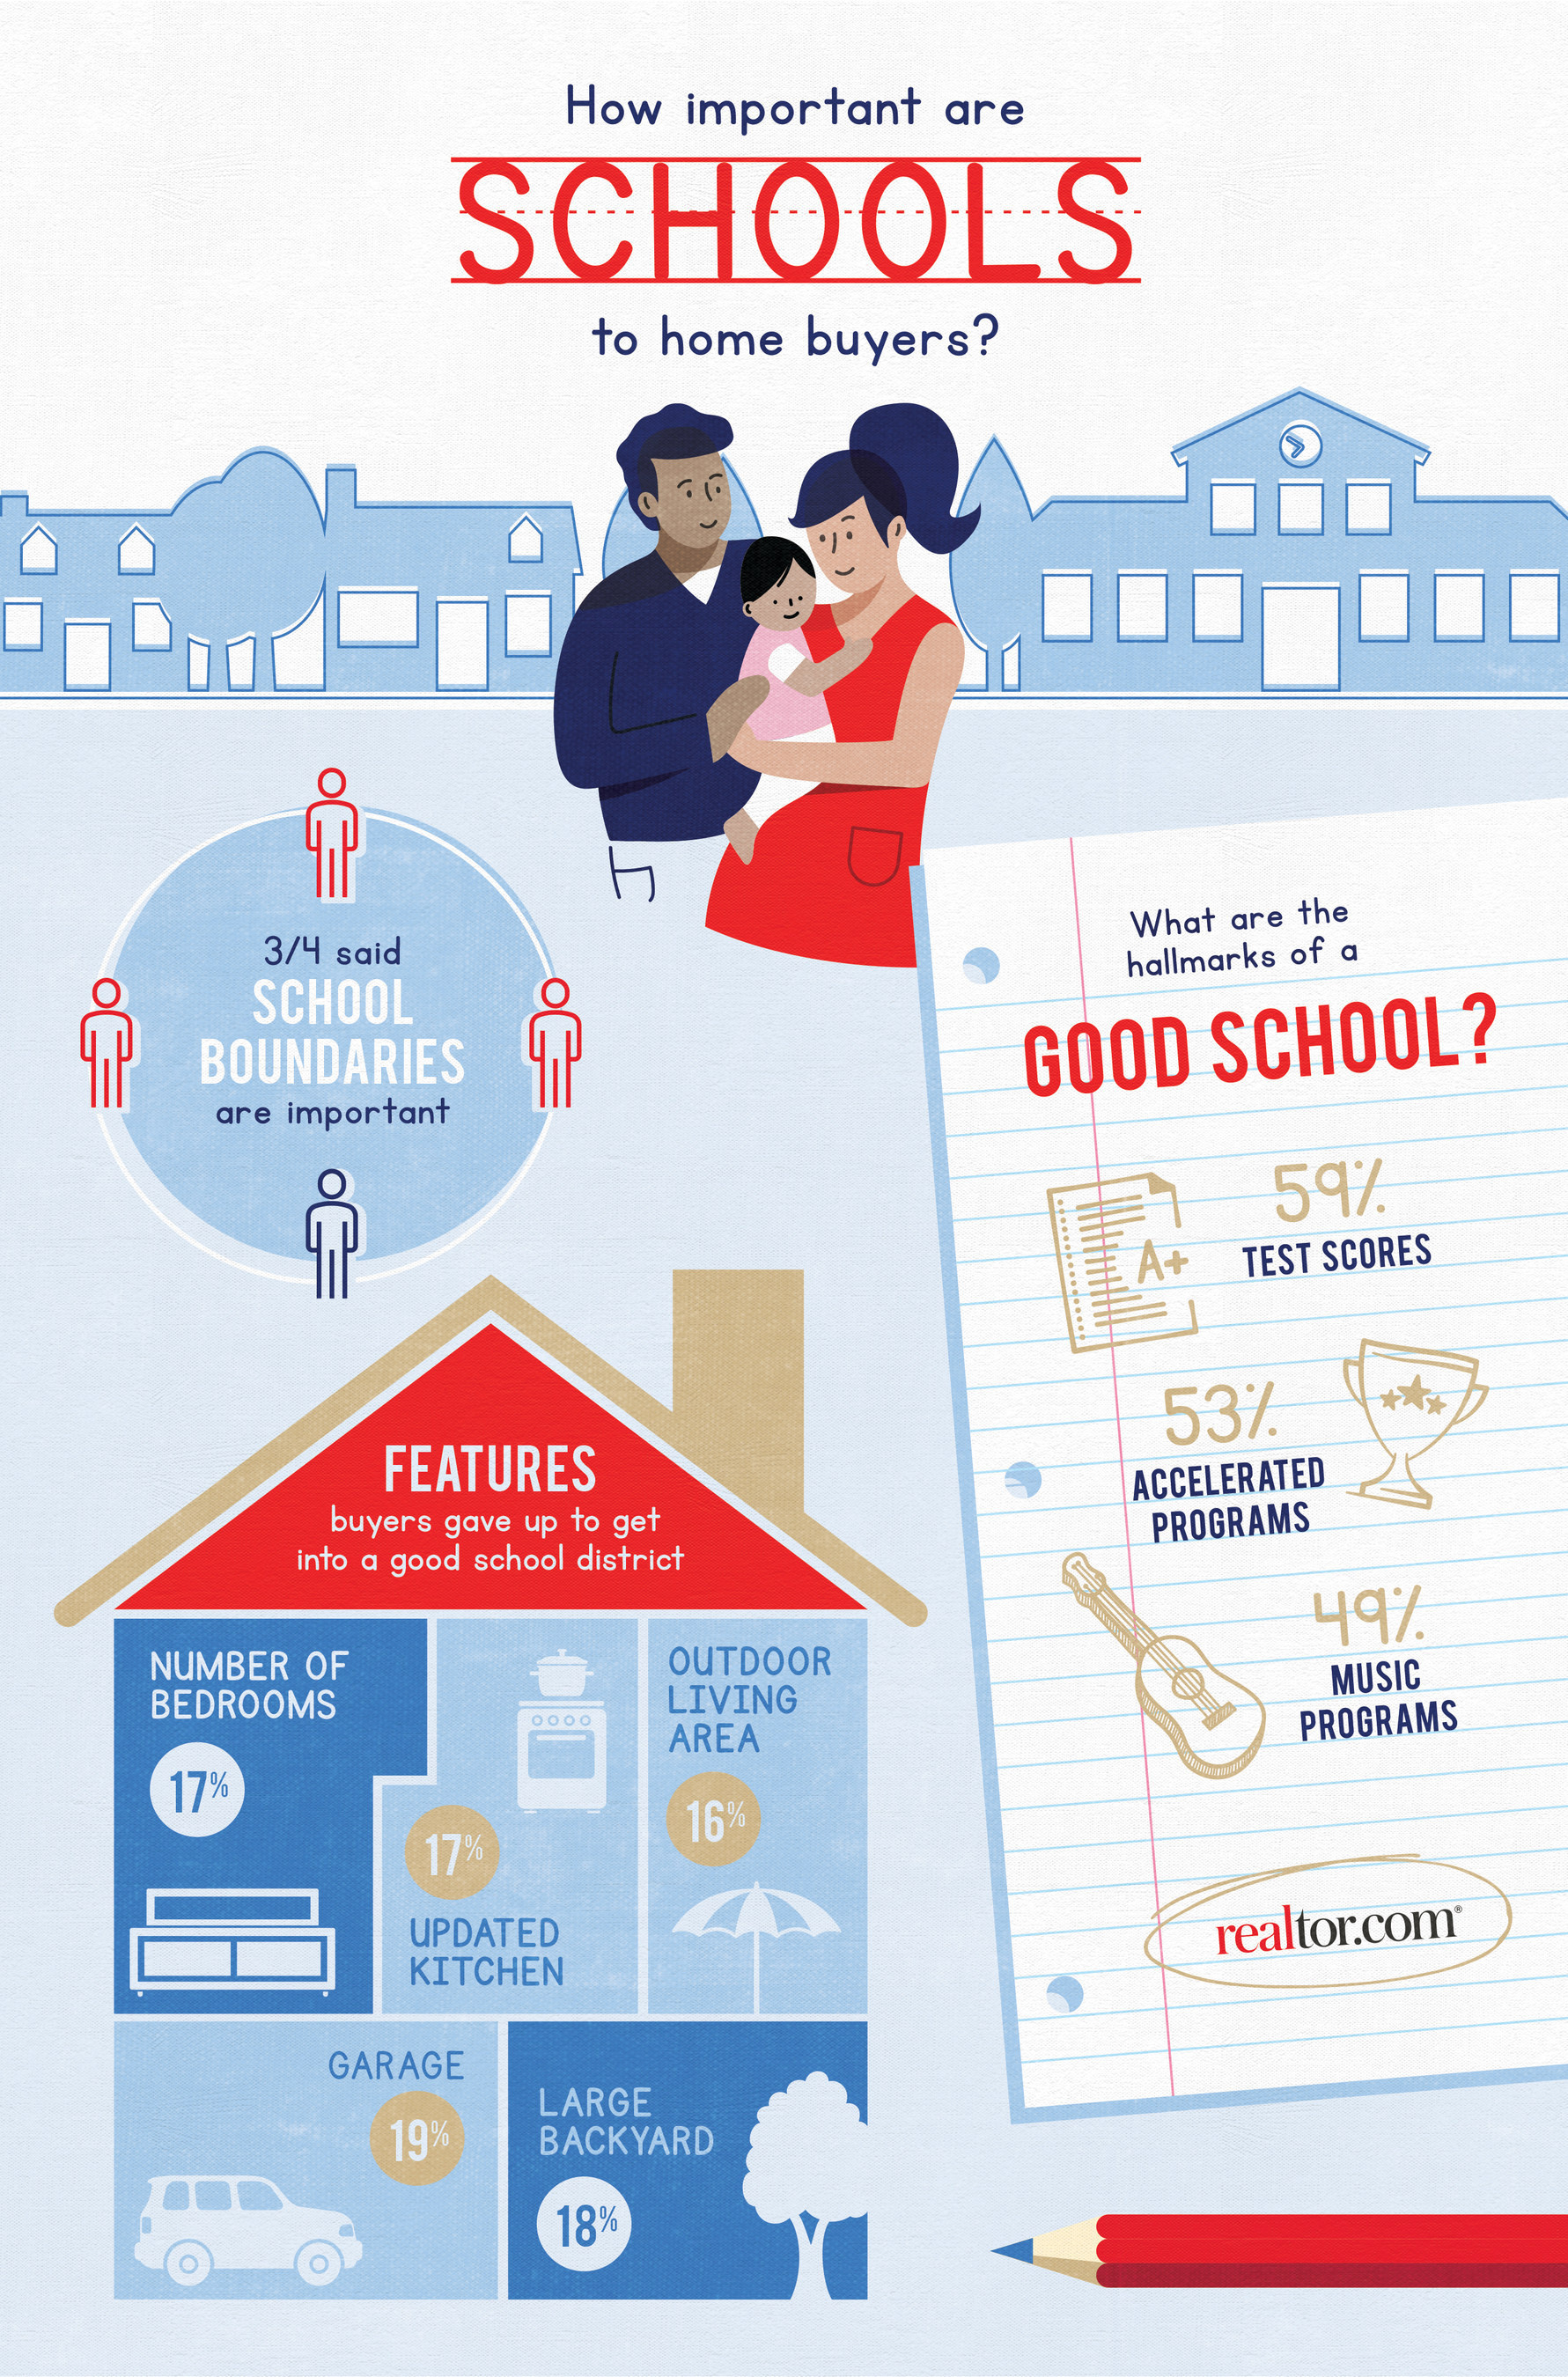 realtor.com school infographic. Visit source link at the end of the article for full text.